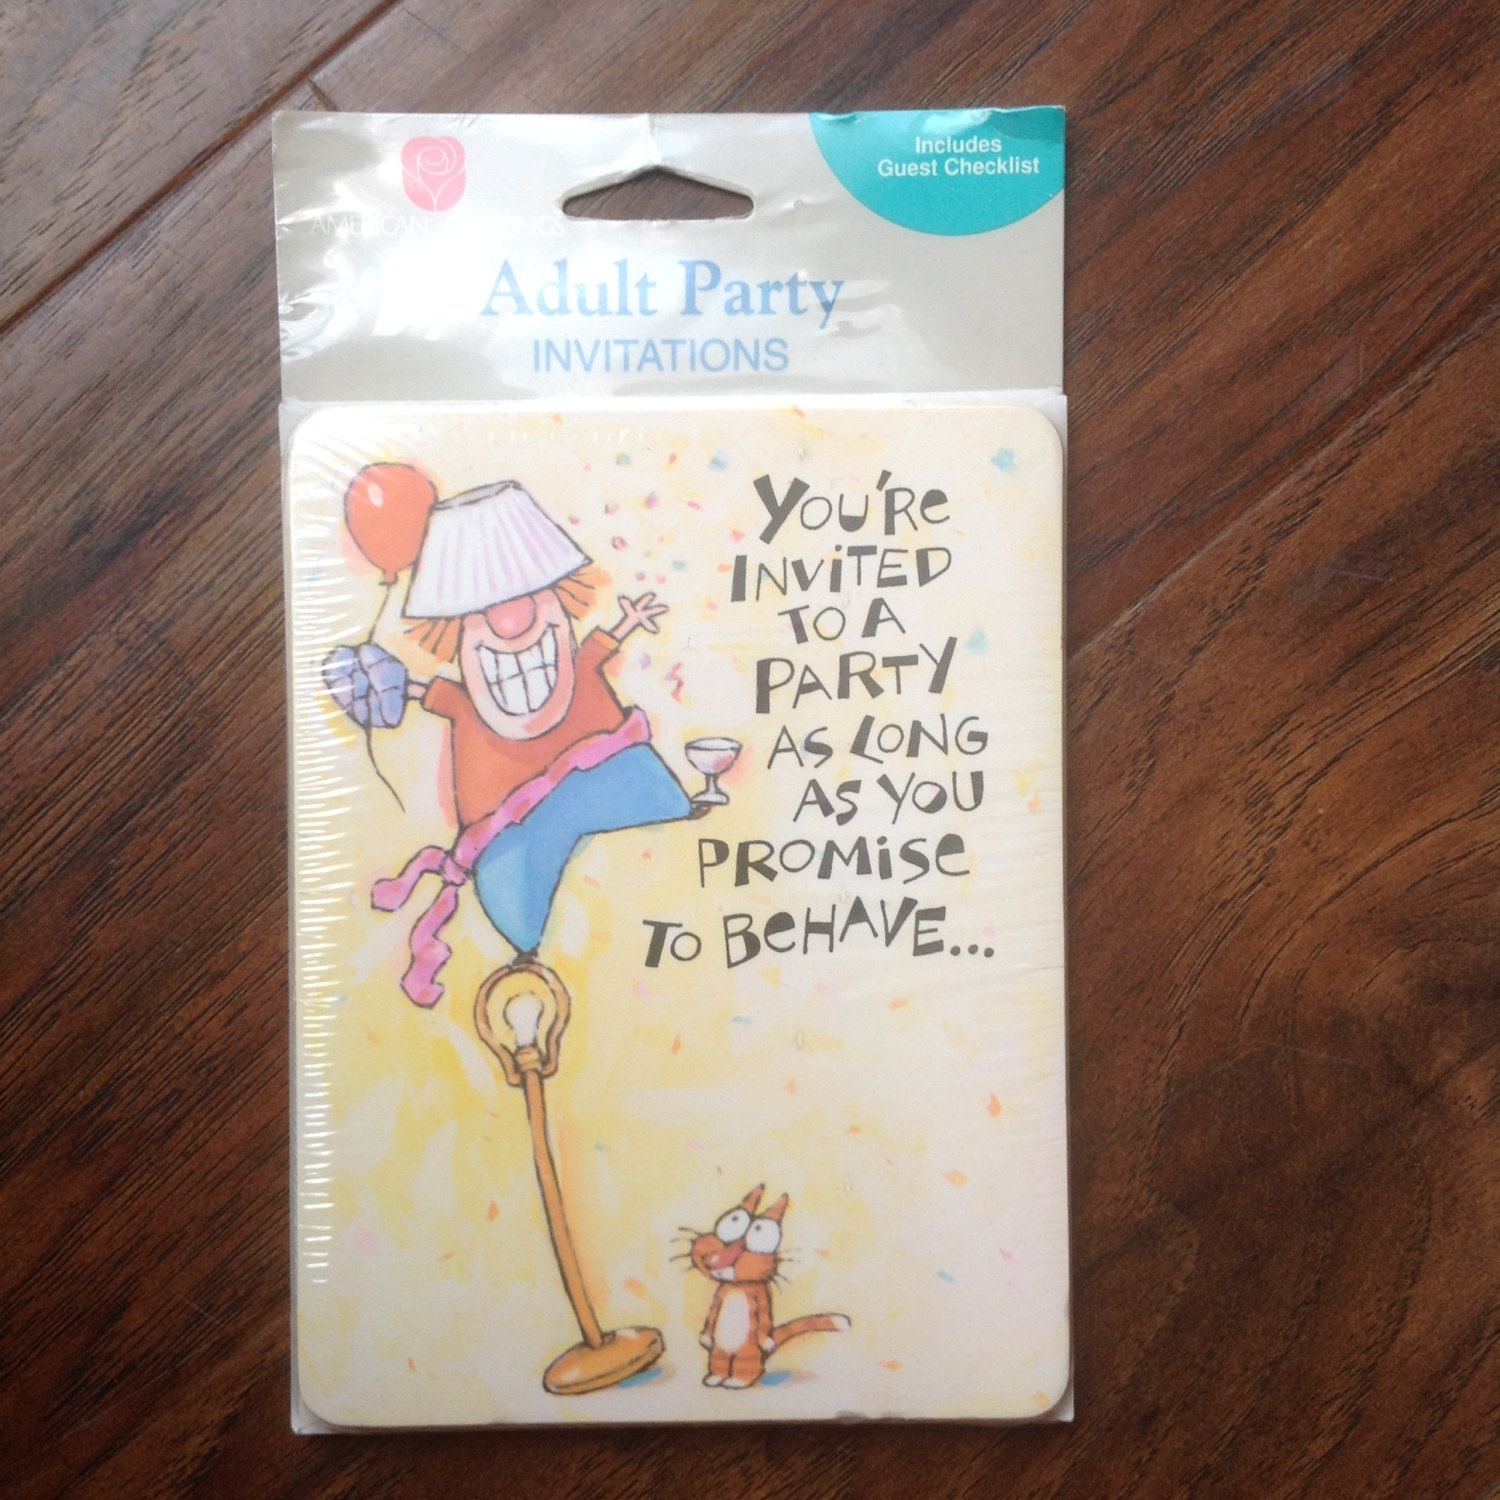 Vintage party invitations party invites american greetings adult vintage american greetings adult party invitations nos sealed 8 cards envelopes in collectibles paper vintage greeting cards m4hsunfo